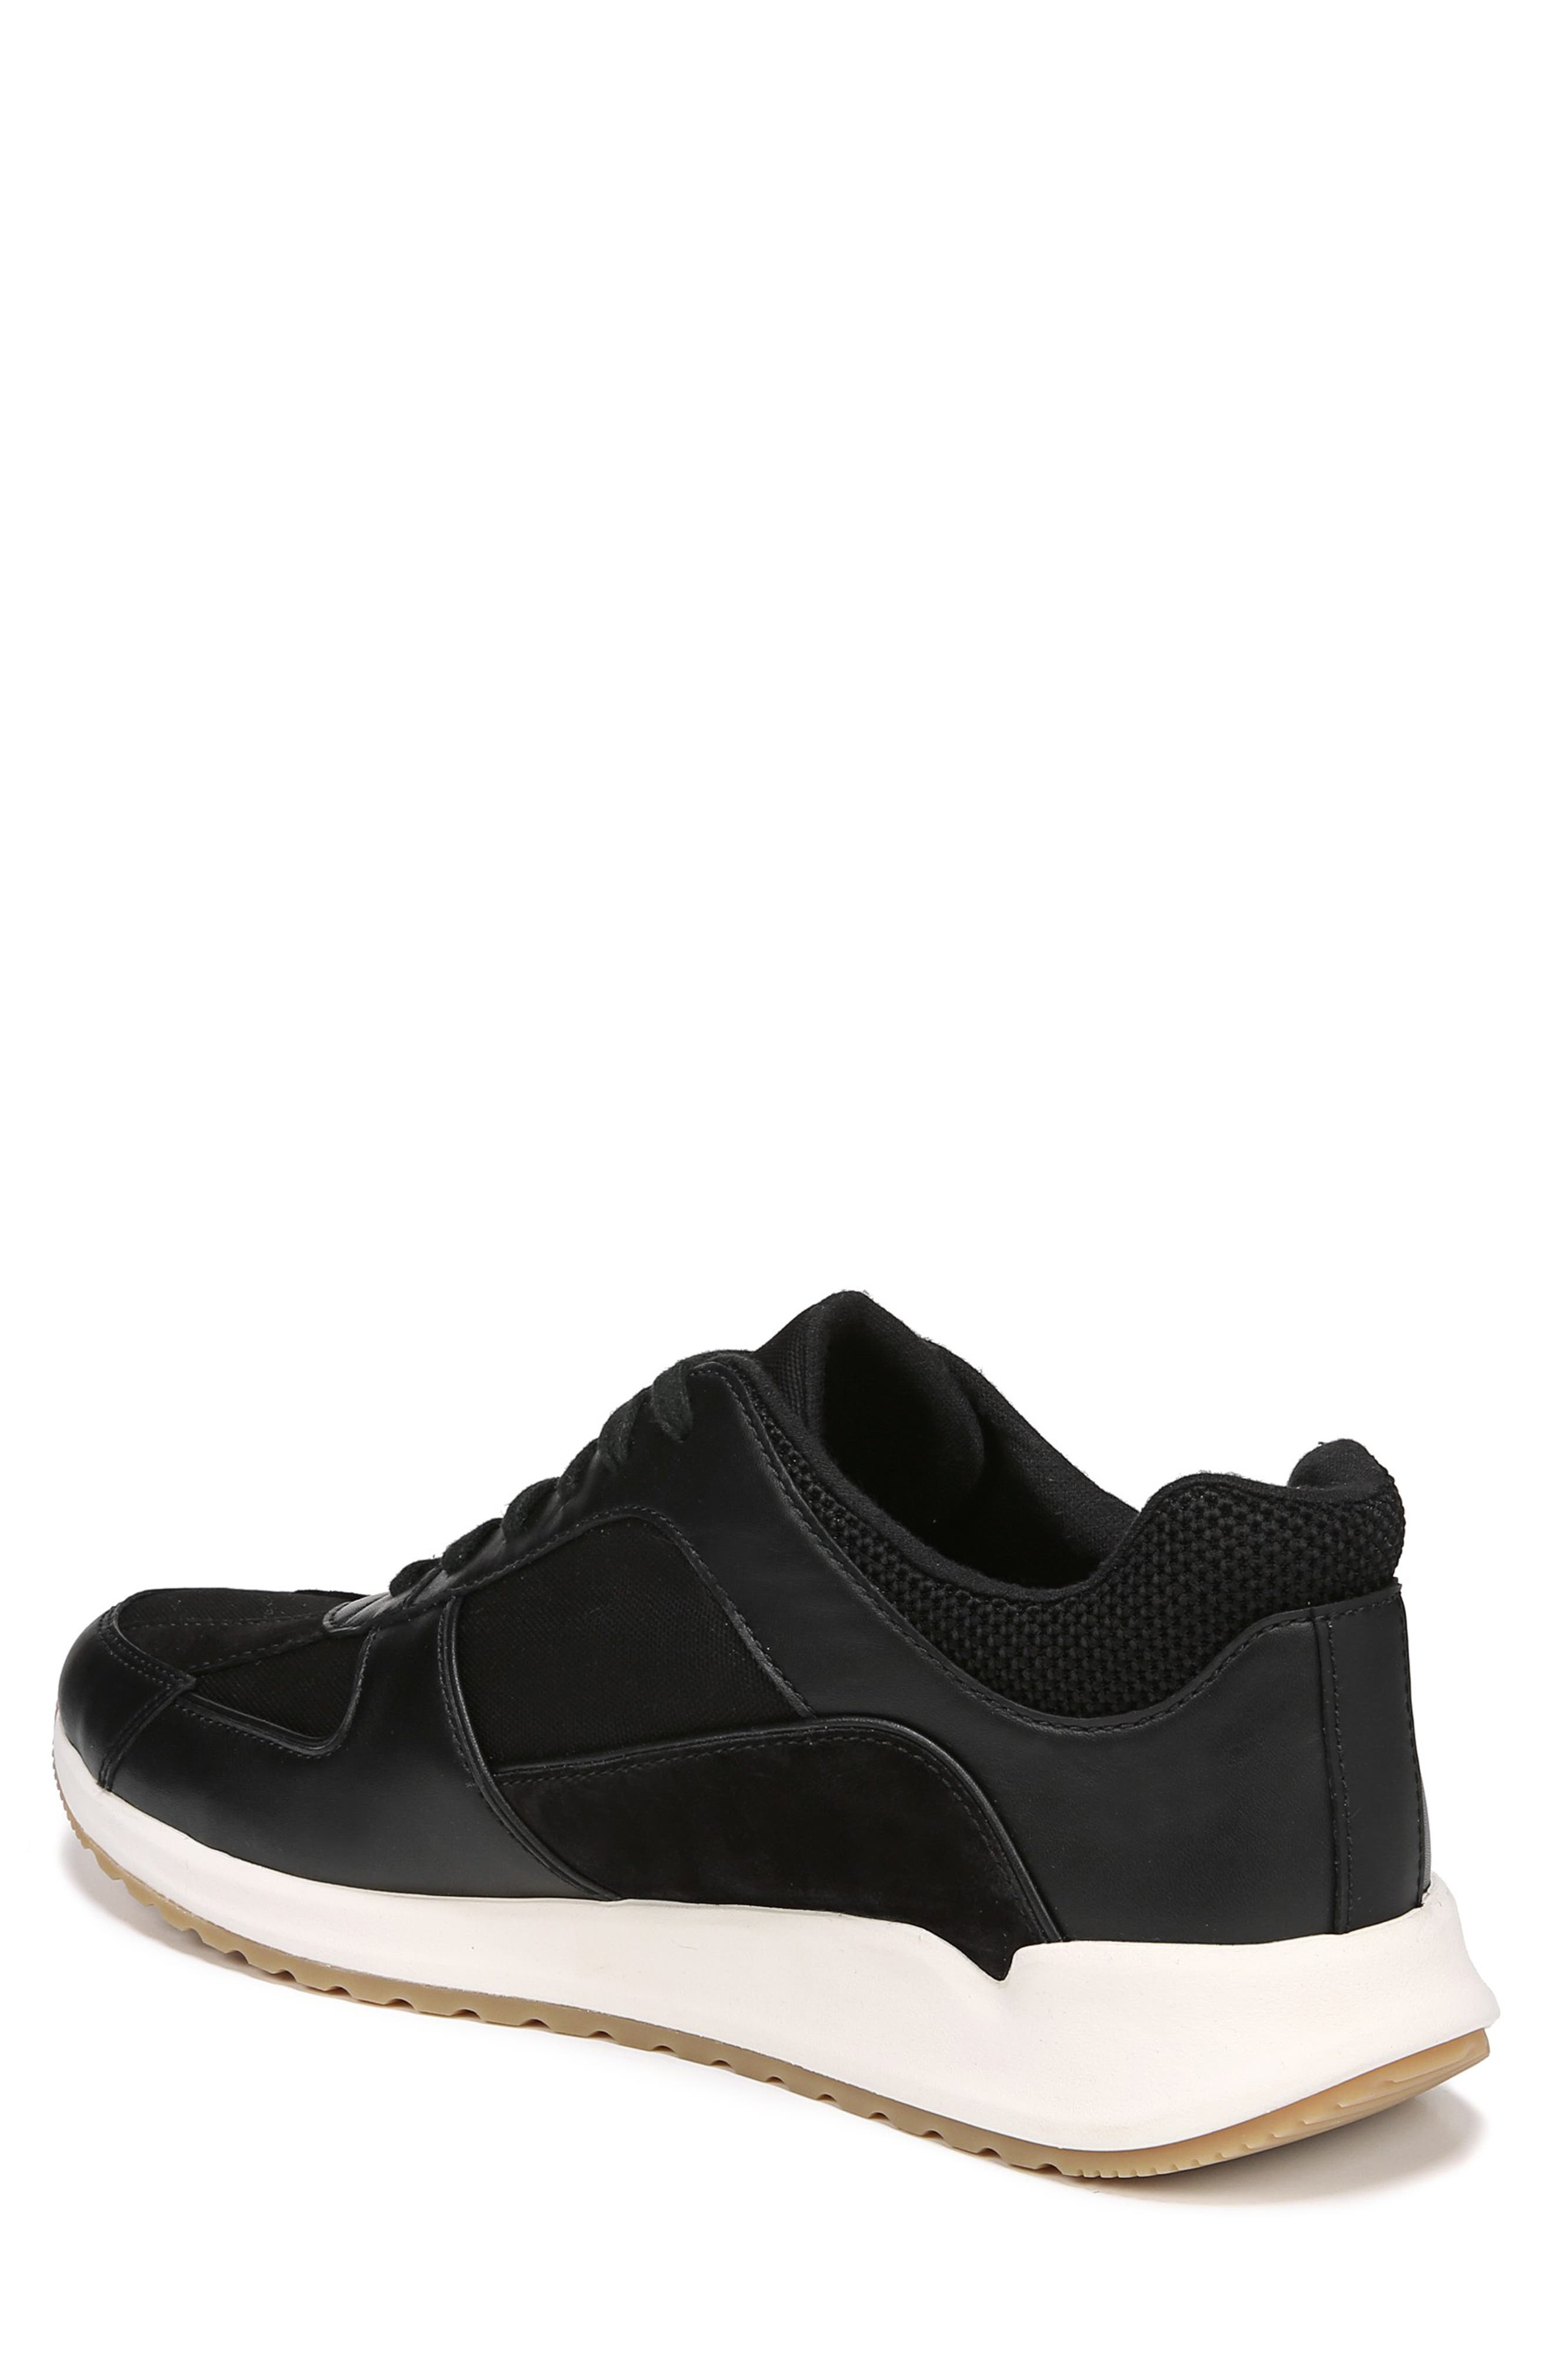 Griffin Sneaker,                             Alternate thumbnail 2, color,                             BLACK/ MADDOX